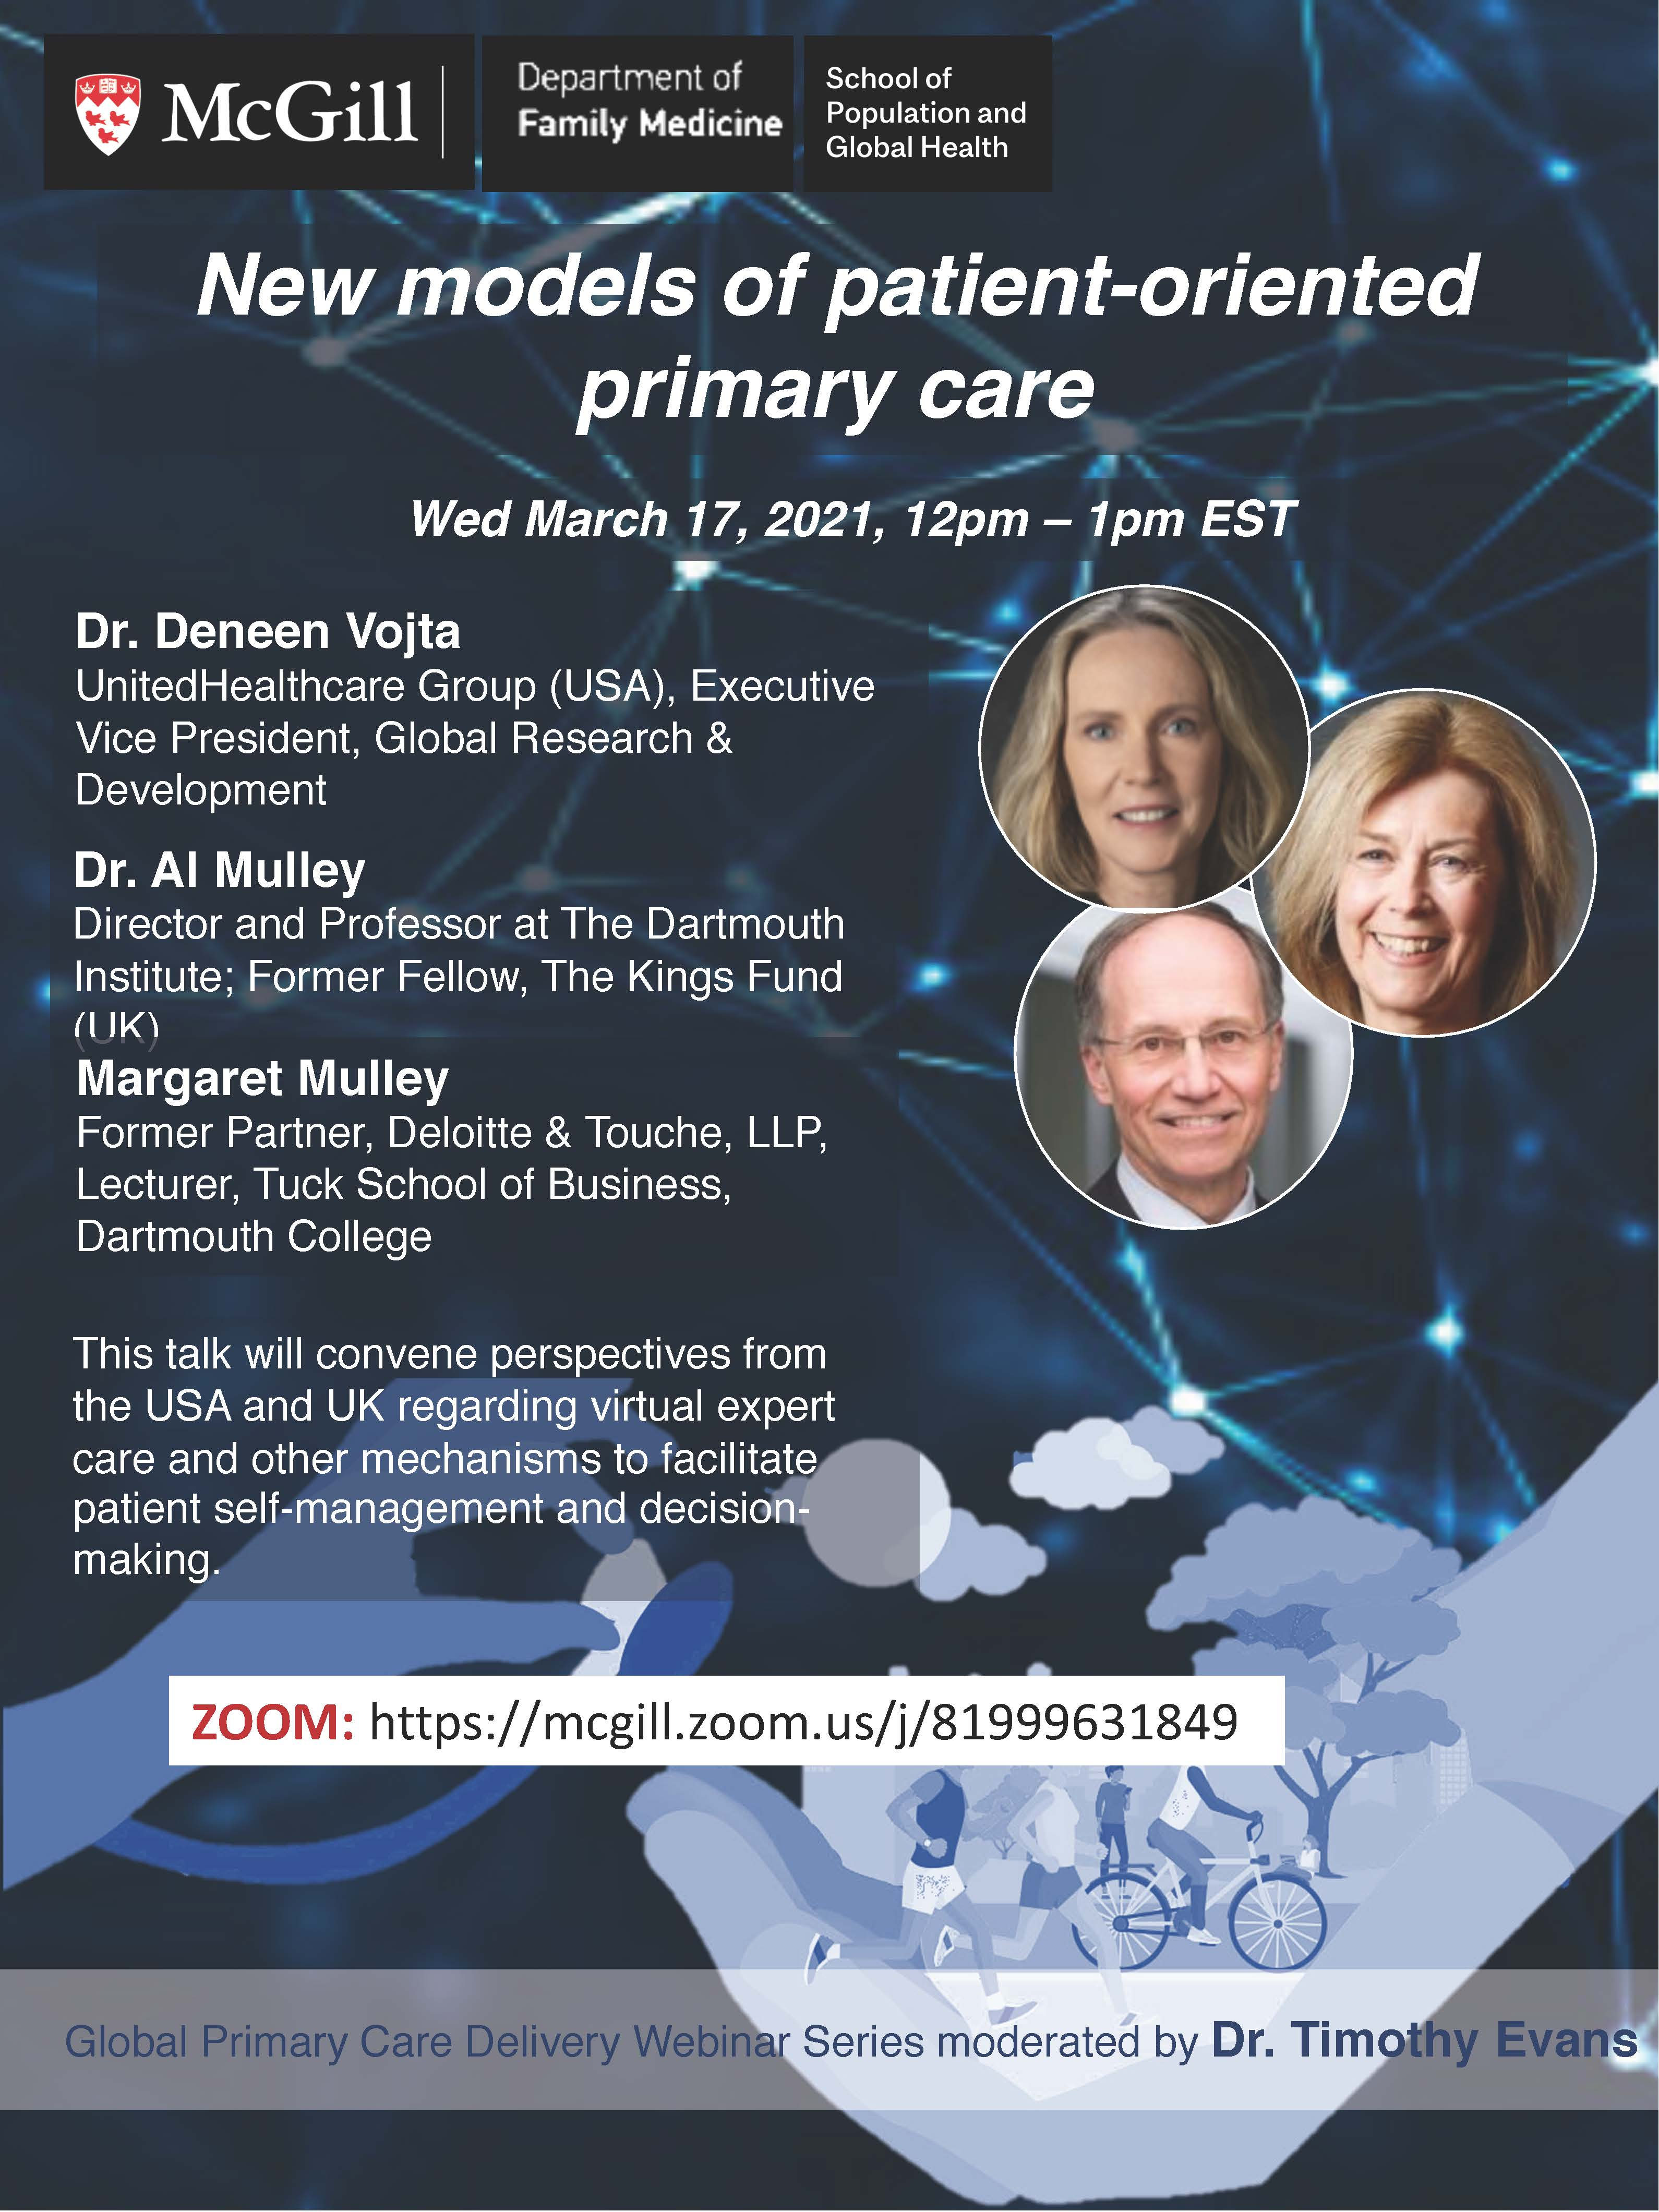 Flyer for 3rd Global Primary Care Webinar featuring photos of the speakers